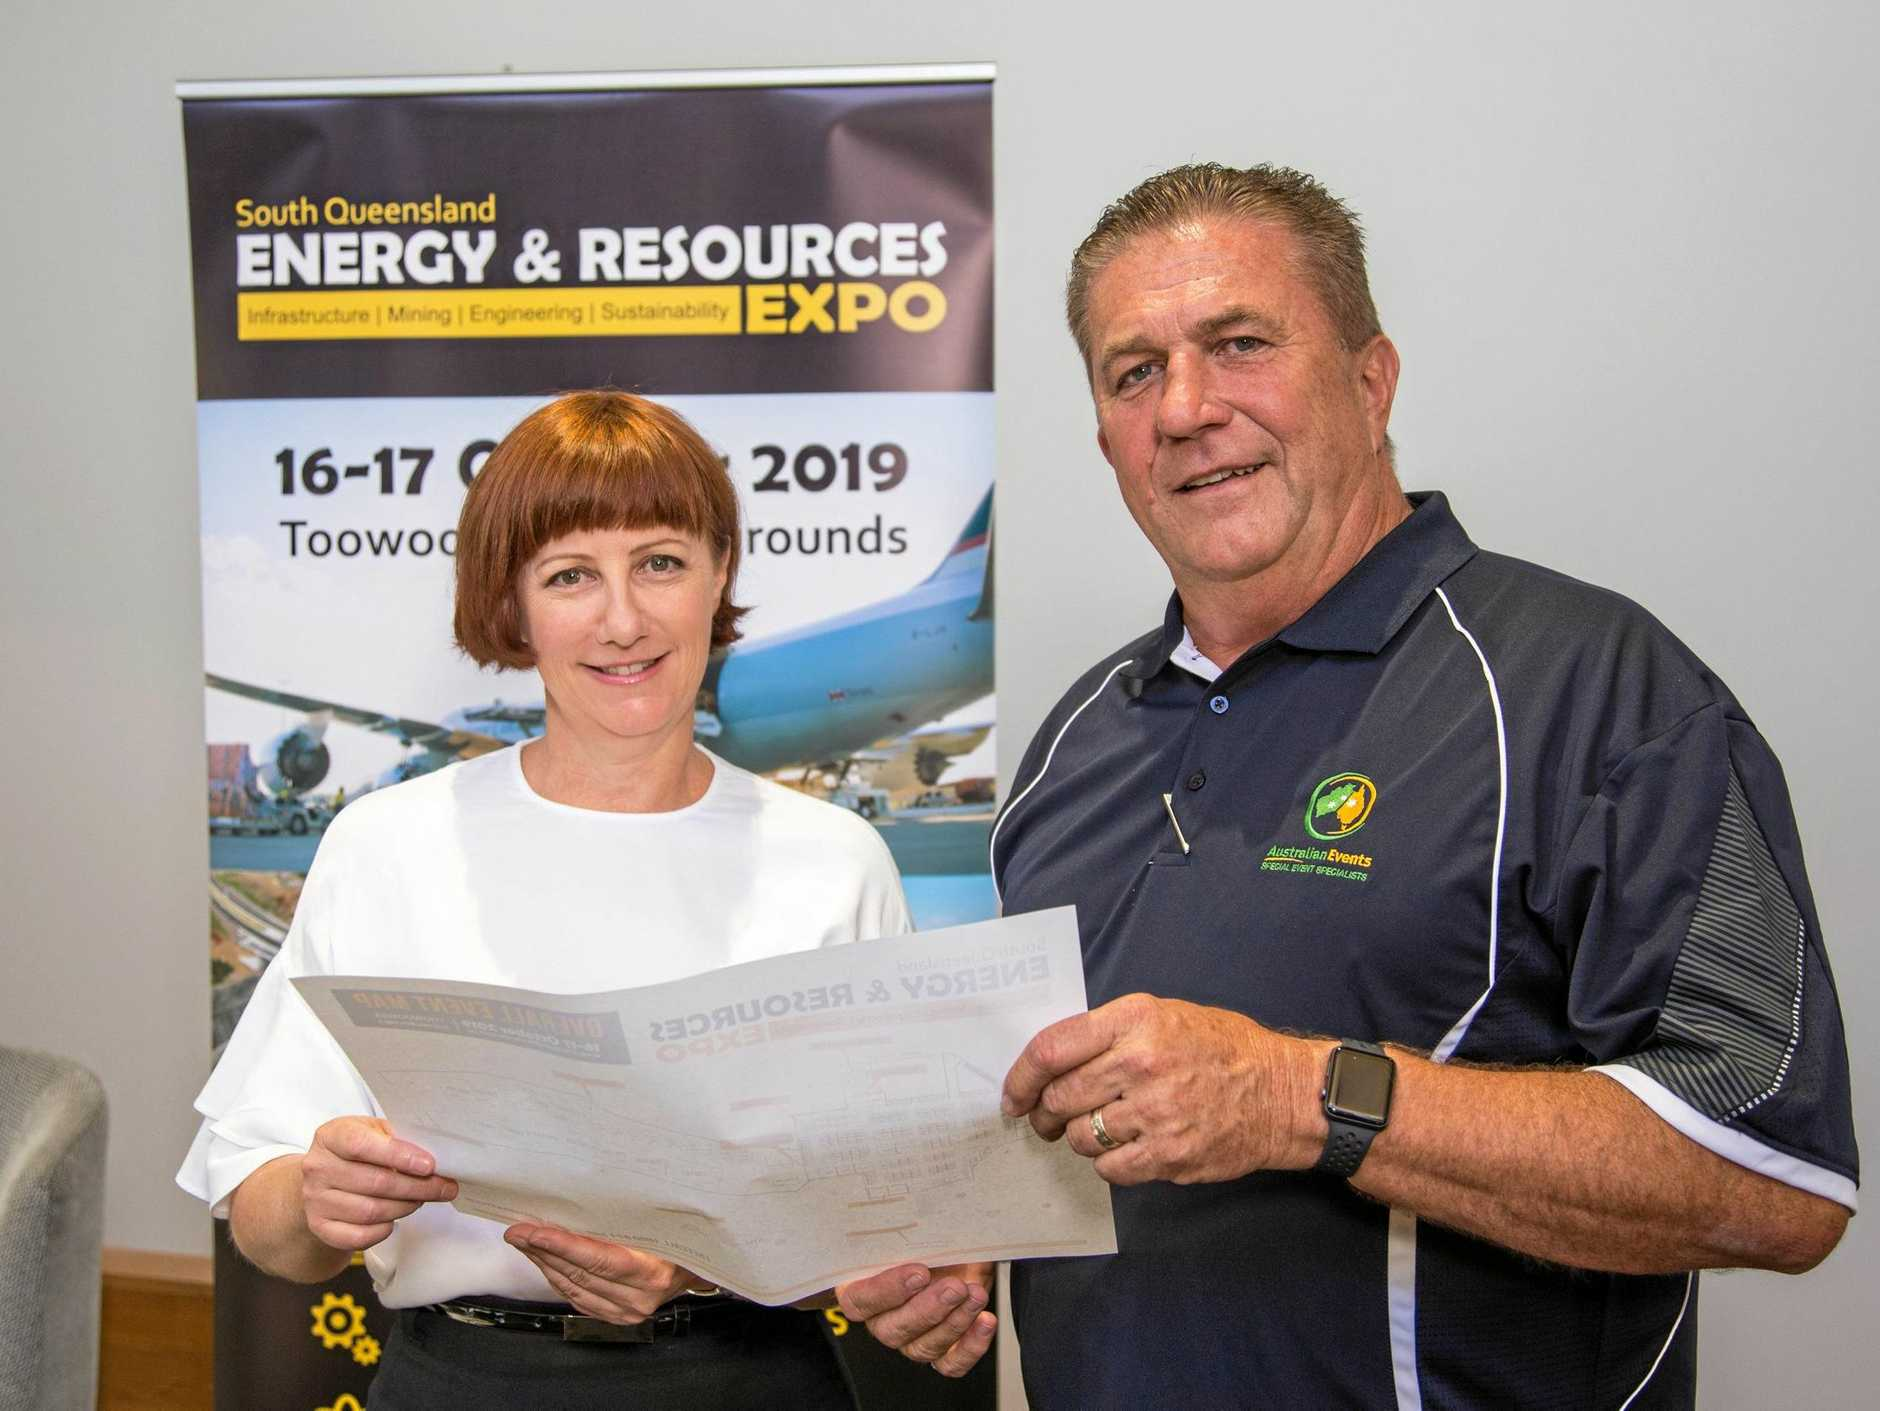 INDUSTRY FOCUS: Toowoomba and Surat Basin Enterprise CEO Ali Davenport and Australian Events director Bob Carroll launch the 2019 Energy and Resources Expo